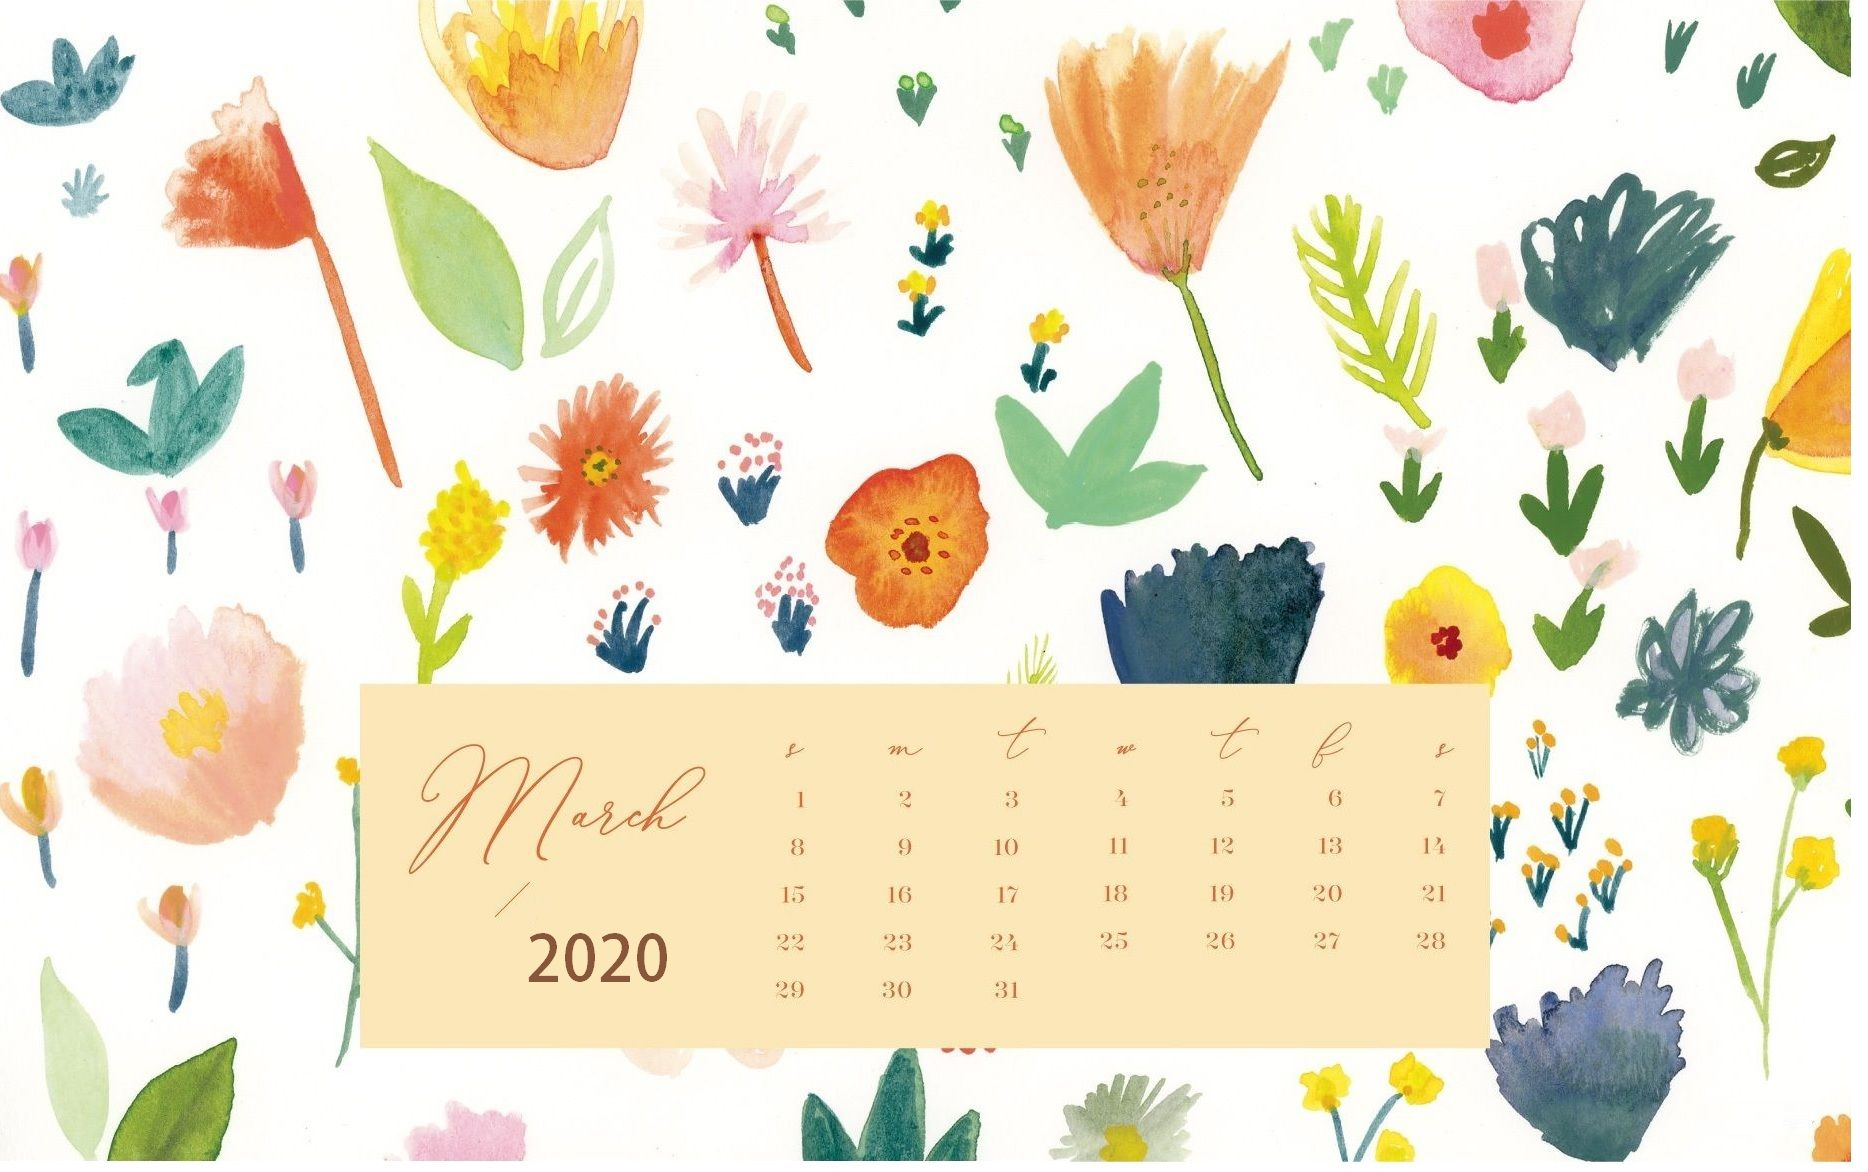 March 2020 Calendar Wallpapers   Top March 2020 Calendar 1868x1172